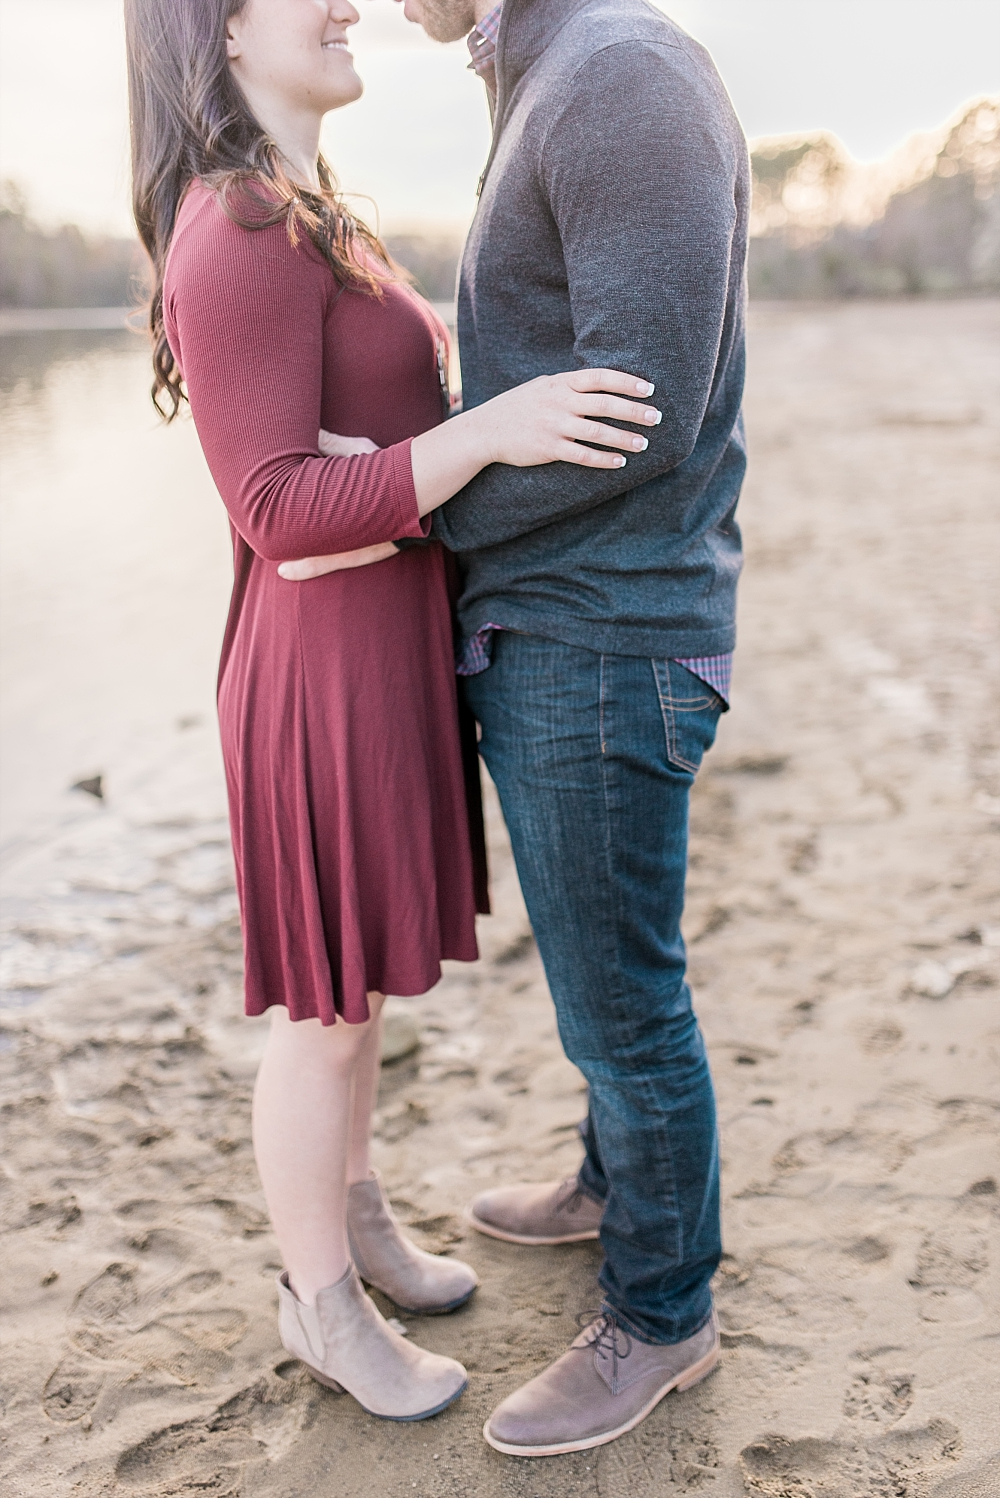 JuicebeatsPhotography_KnoxvilleEngagement_Kristina&Ben_0021.jpg